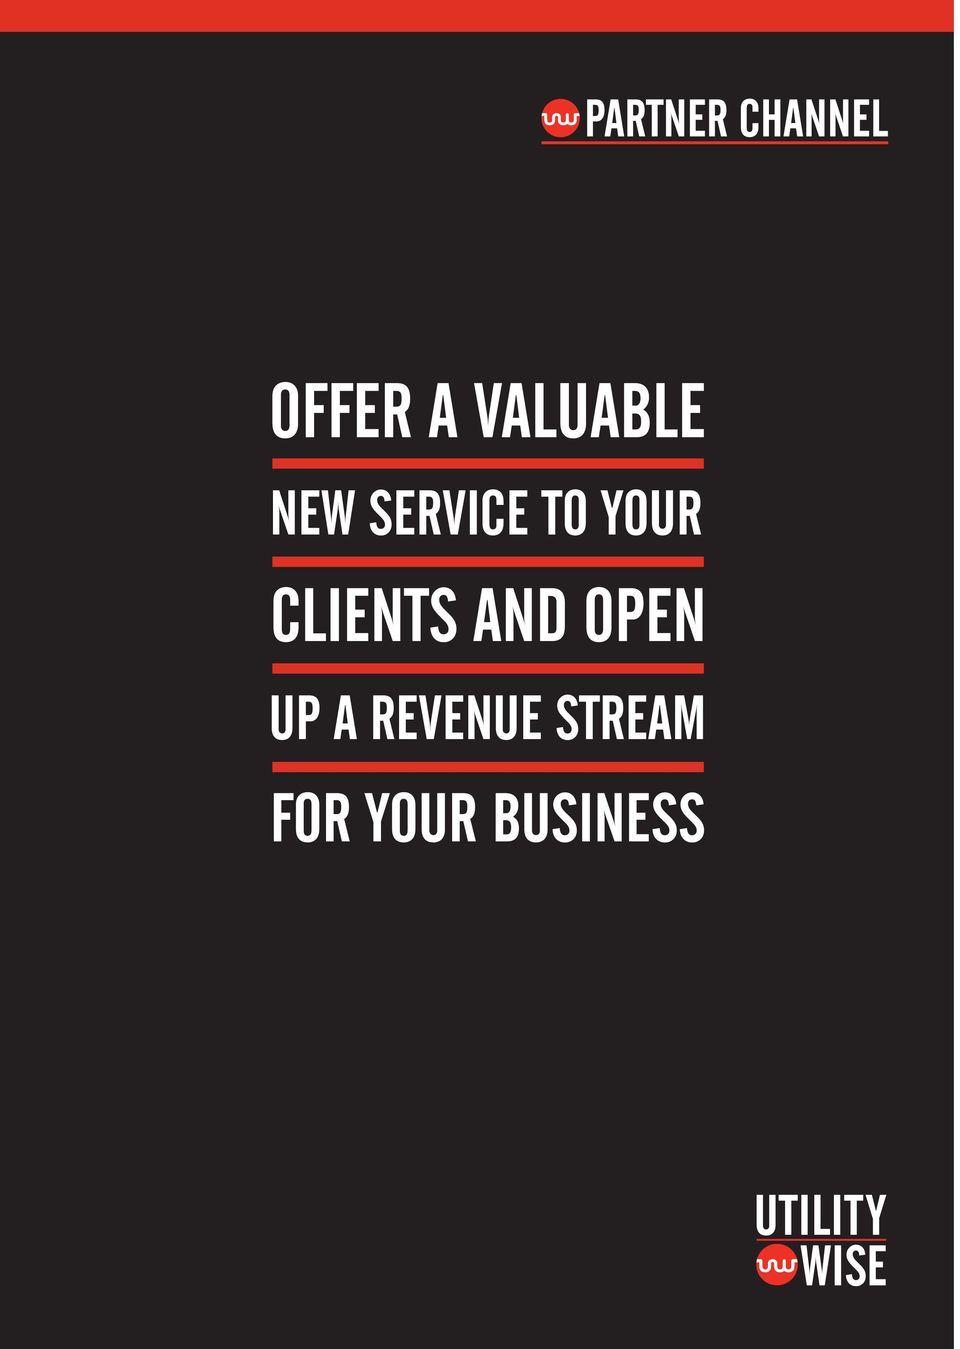 CLIENTS AND OPEN UP A